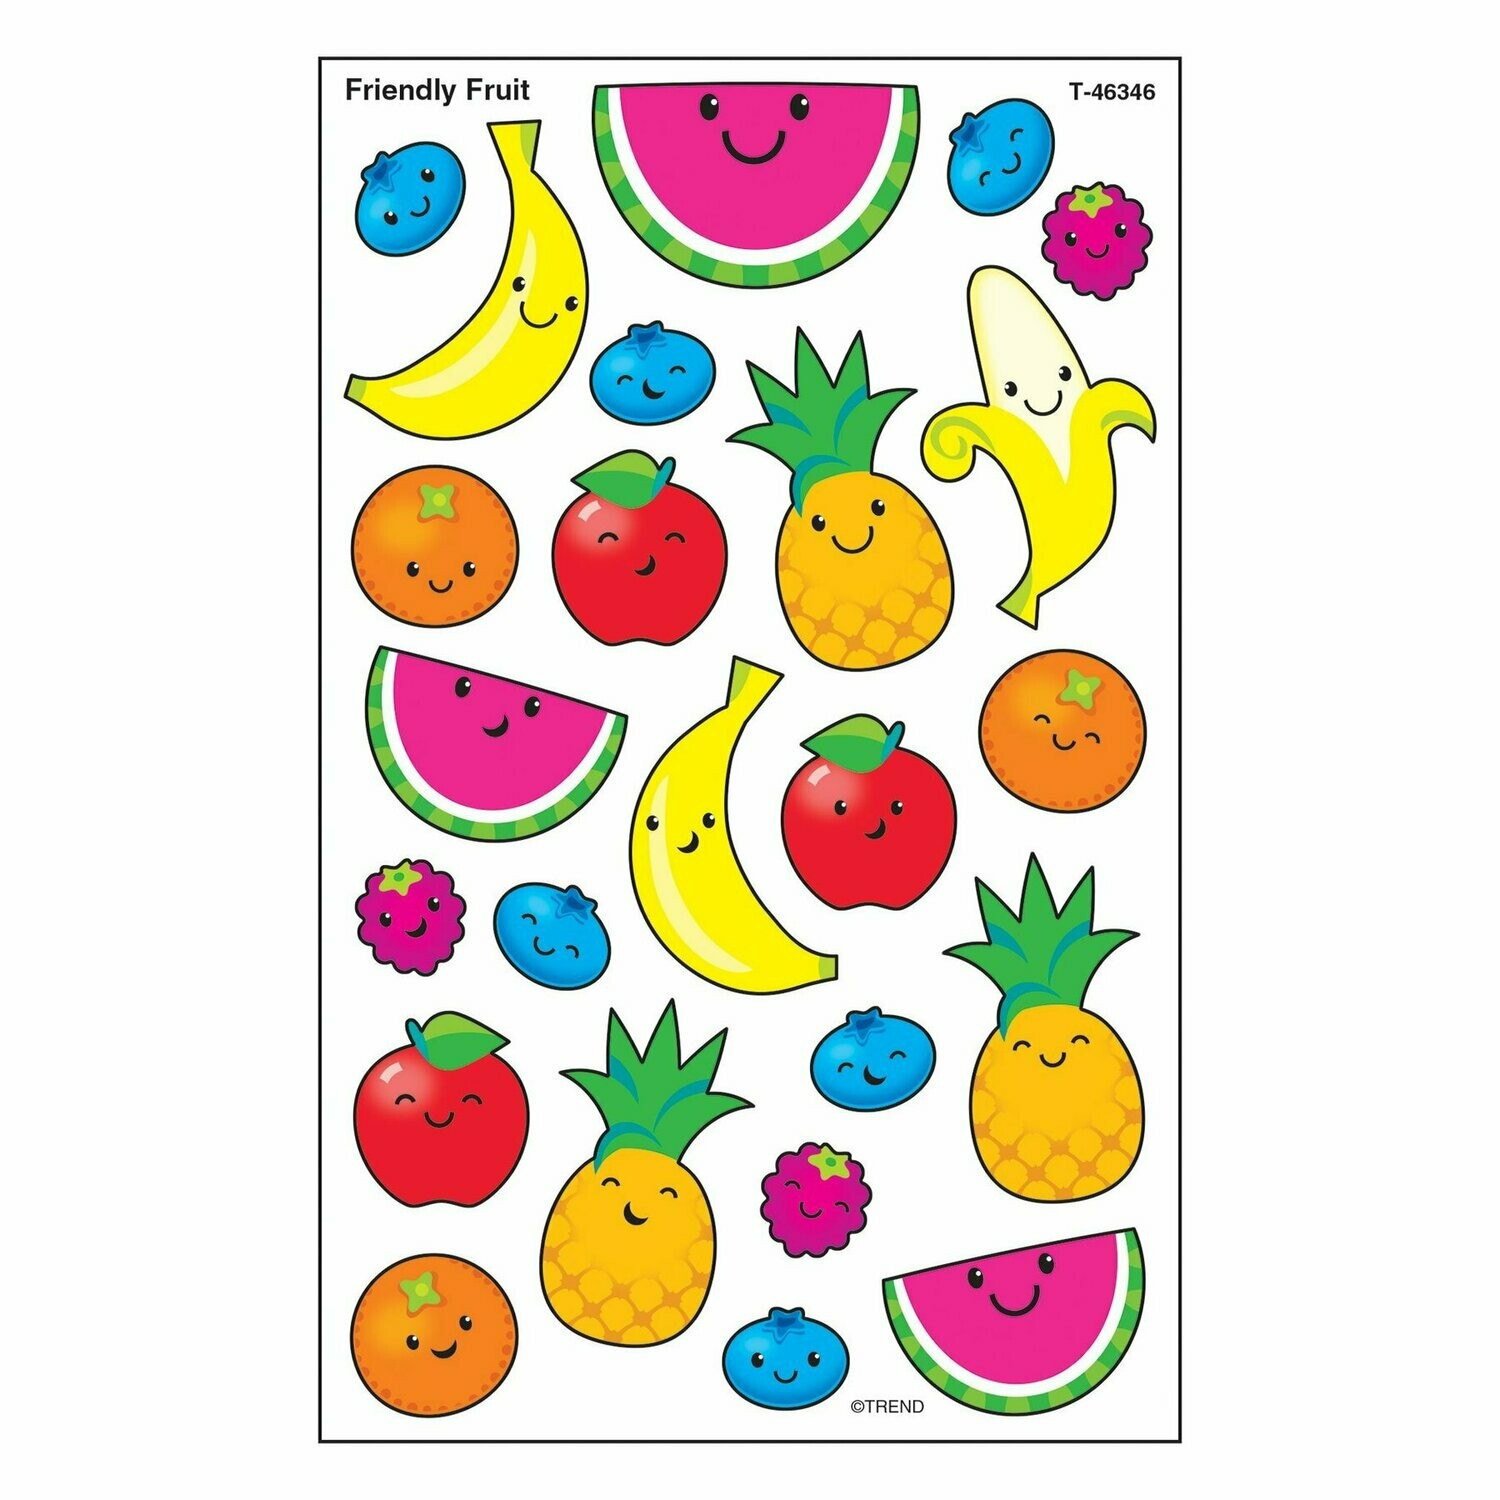 Friendly Fruit superShapes Stickers